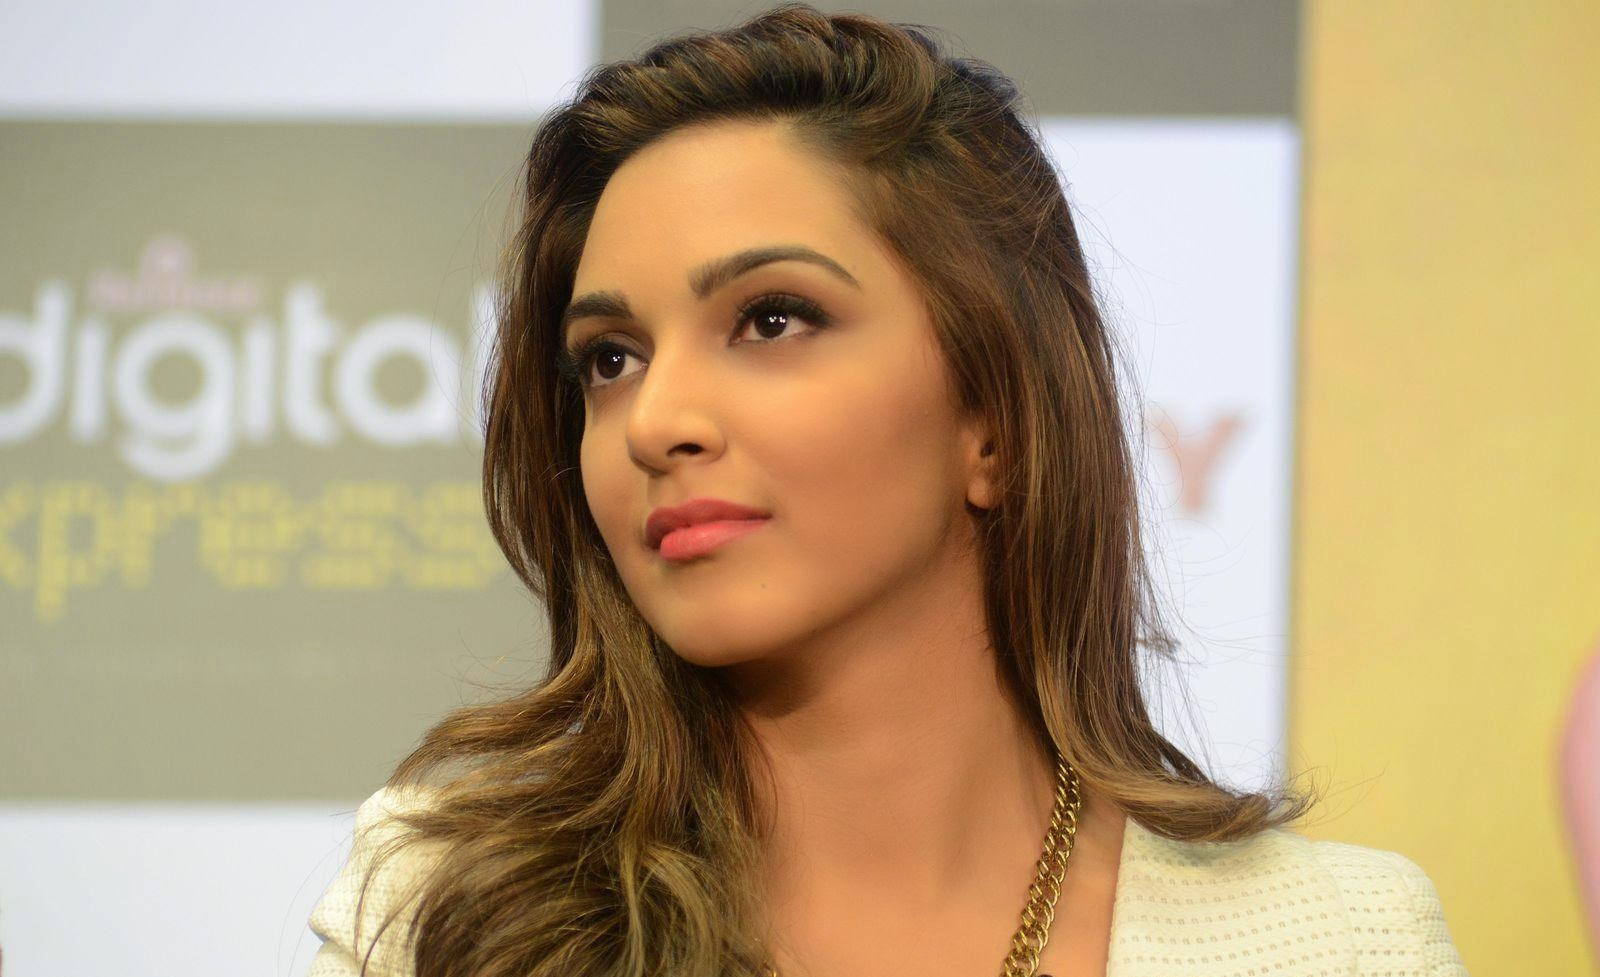 <div>Kiara Advani Showcasing Her Super Sexy Legs and Cleavage At Film &#8216;Fugly&#8217; Trailer Launch Event In Mumbai ❤ ❤  ❤</div>